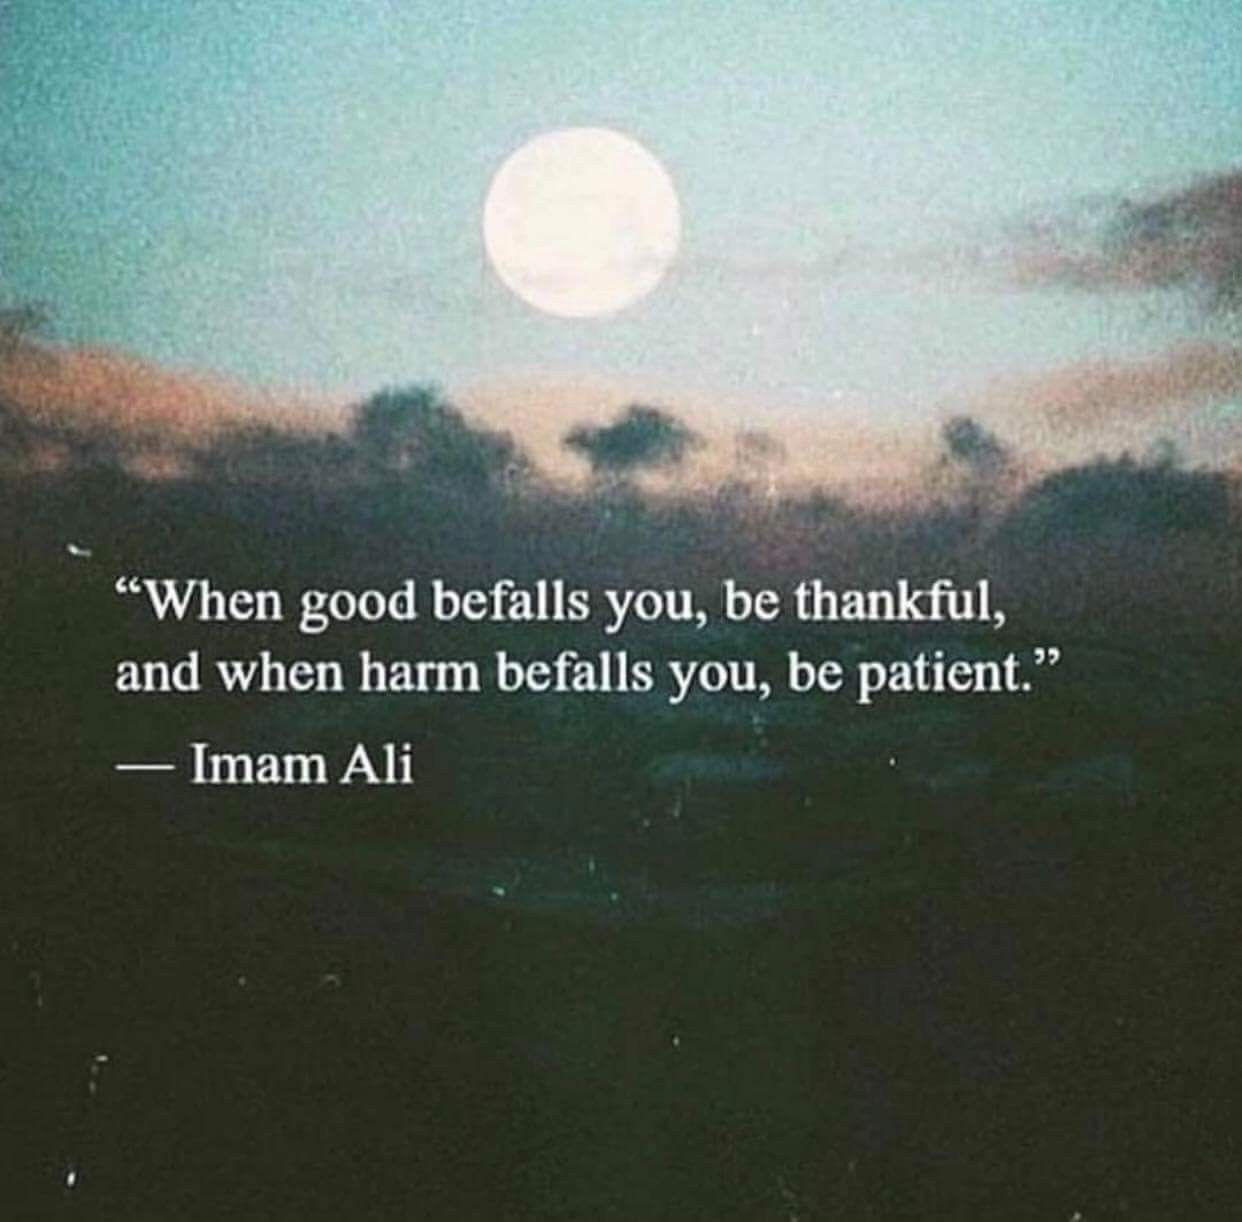 Pin by Hasnain Abidi on Imam Ali a s quotes | Islamic quotes